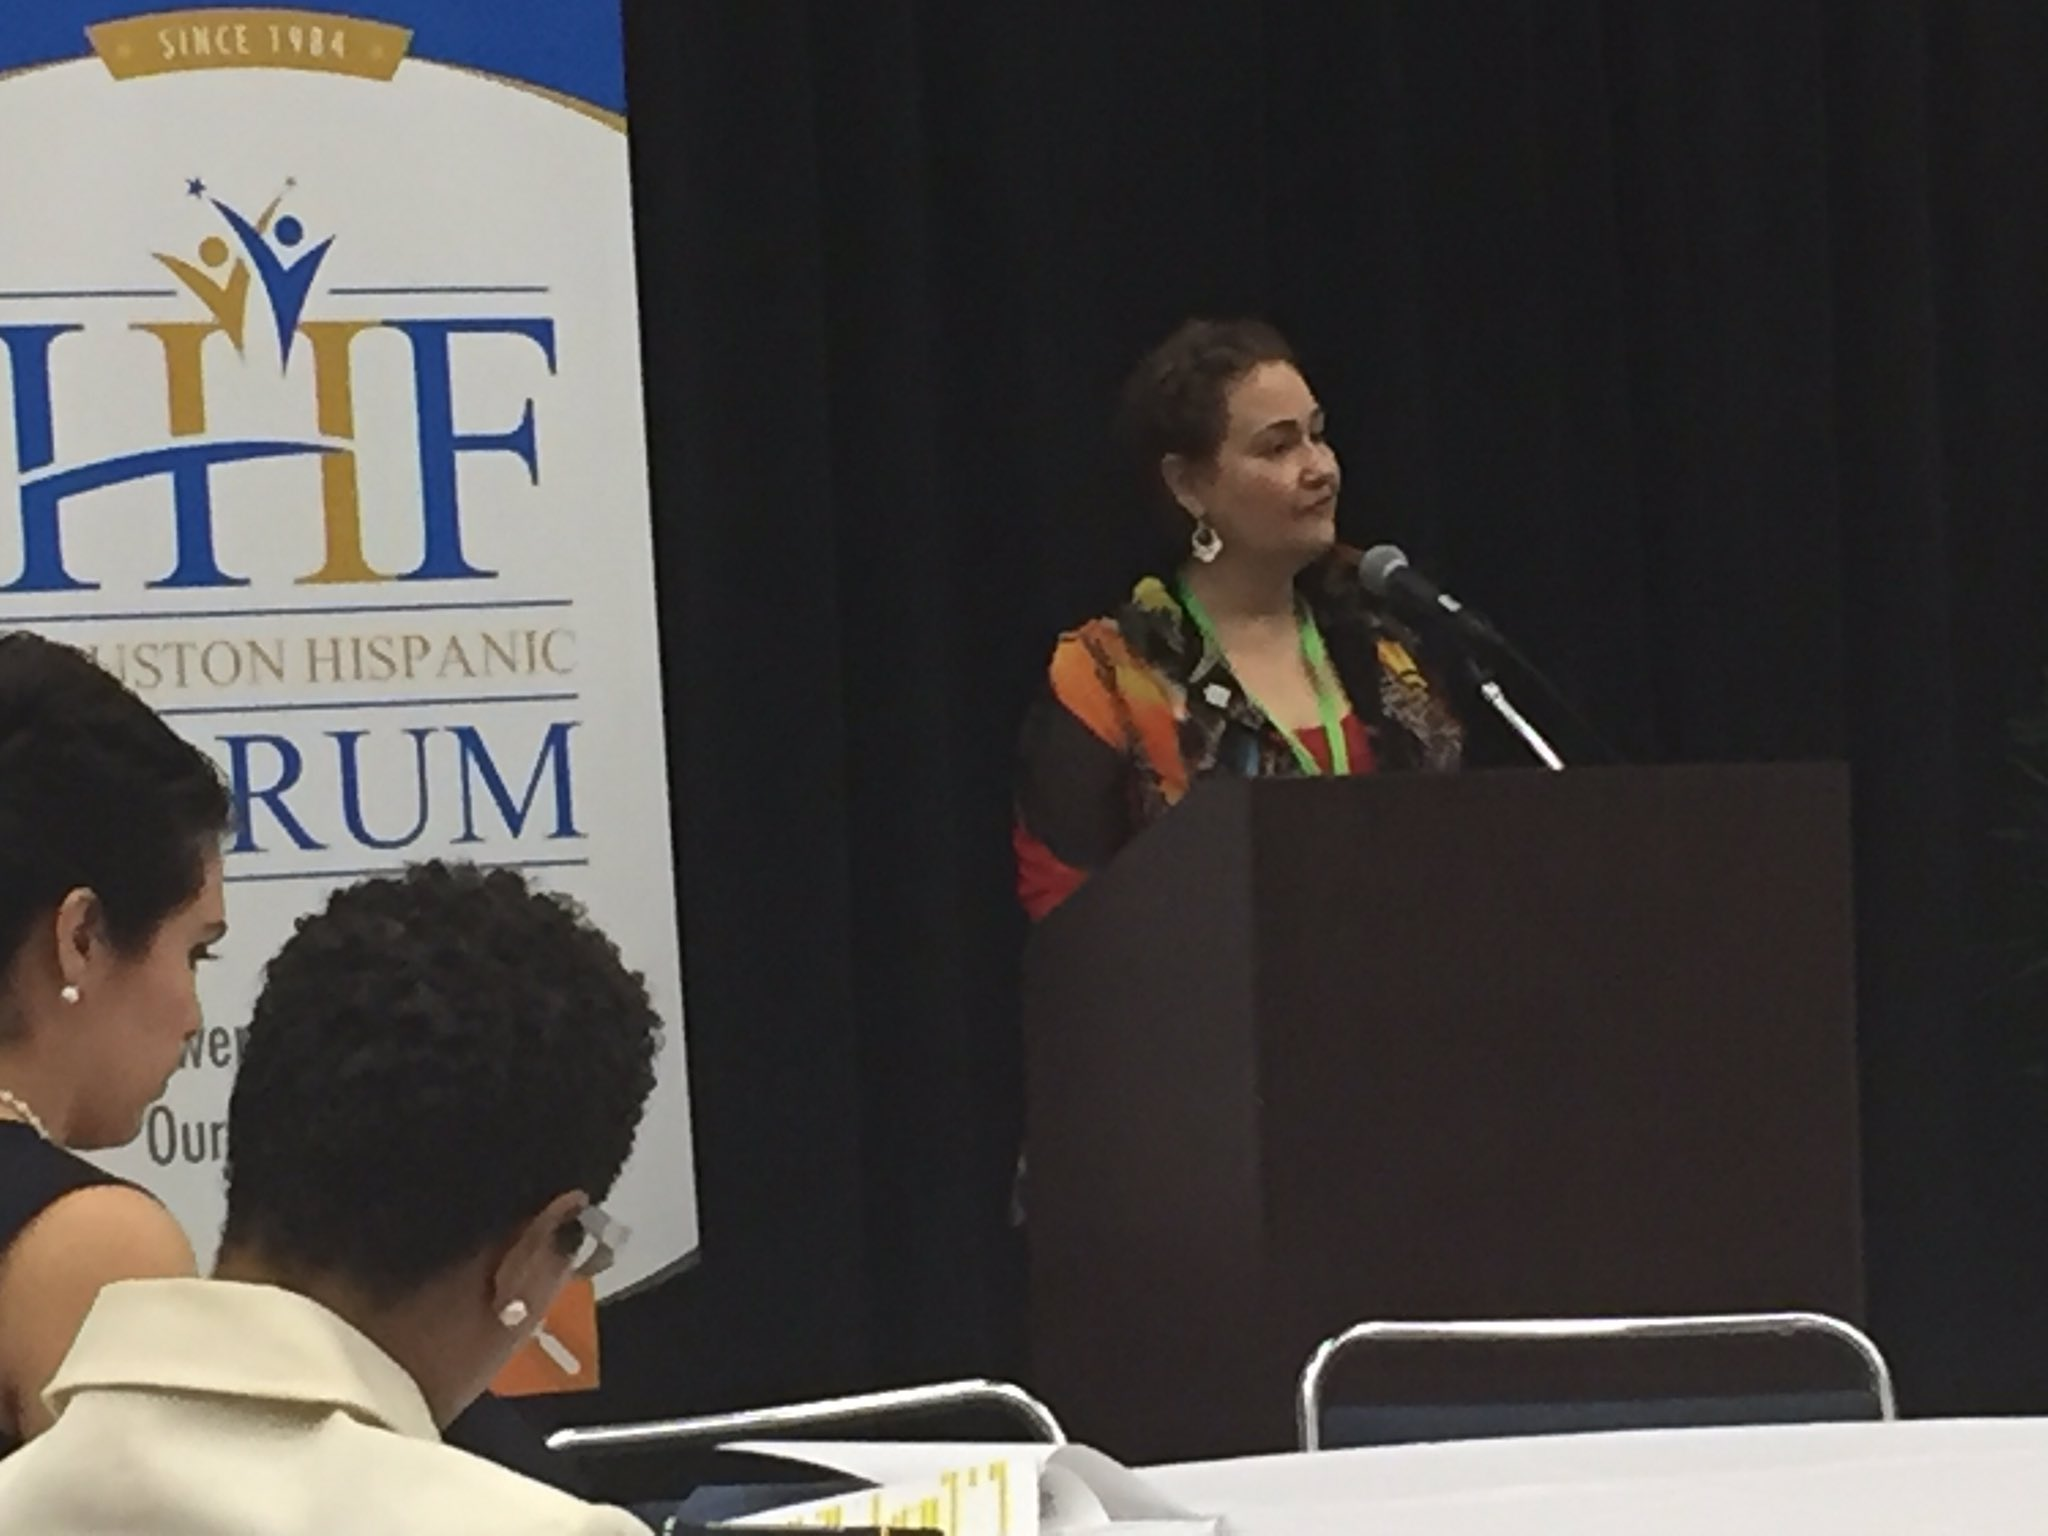 Your future is in your hands. Linda Flores Olson welcome supporters to Houston Hispanic Forum Career & Education Day. #cedhou #futurehouston https://t.co/MNTxck7SIz